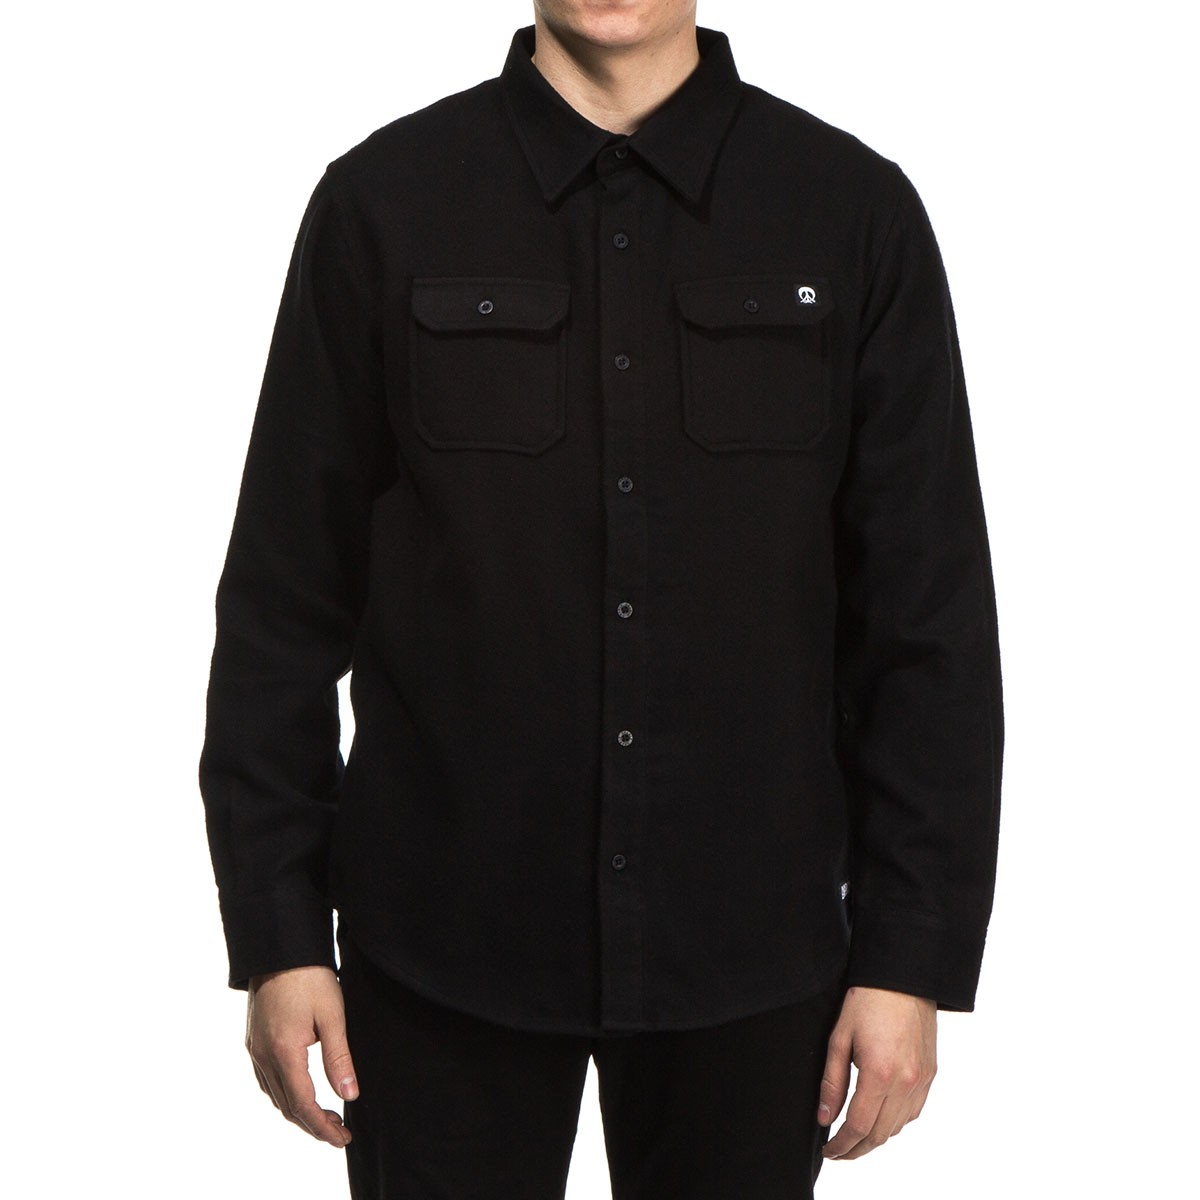 Gnarly Solid Flannel Shirt - Black - LG